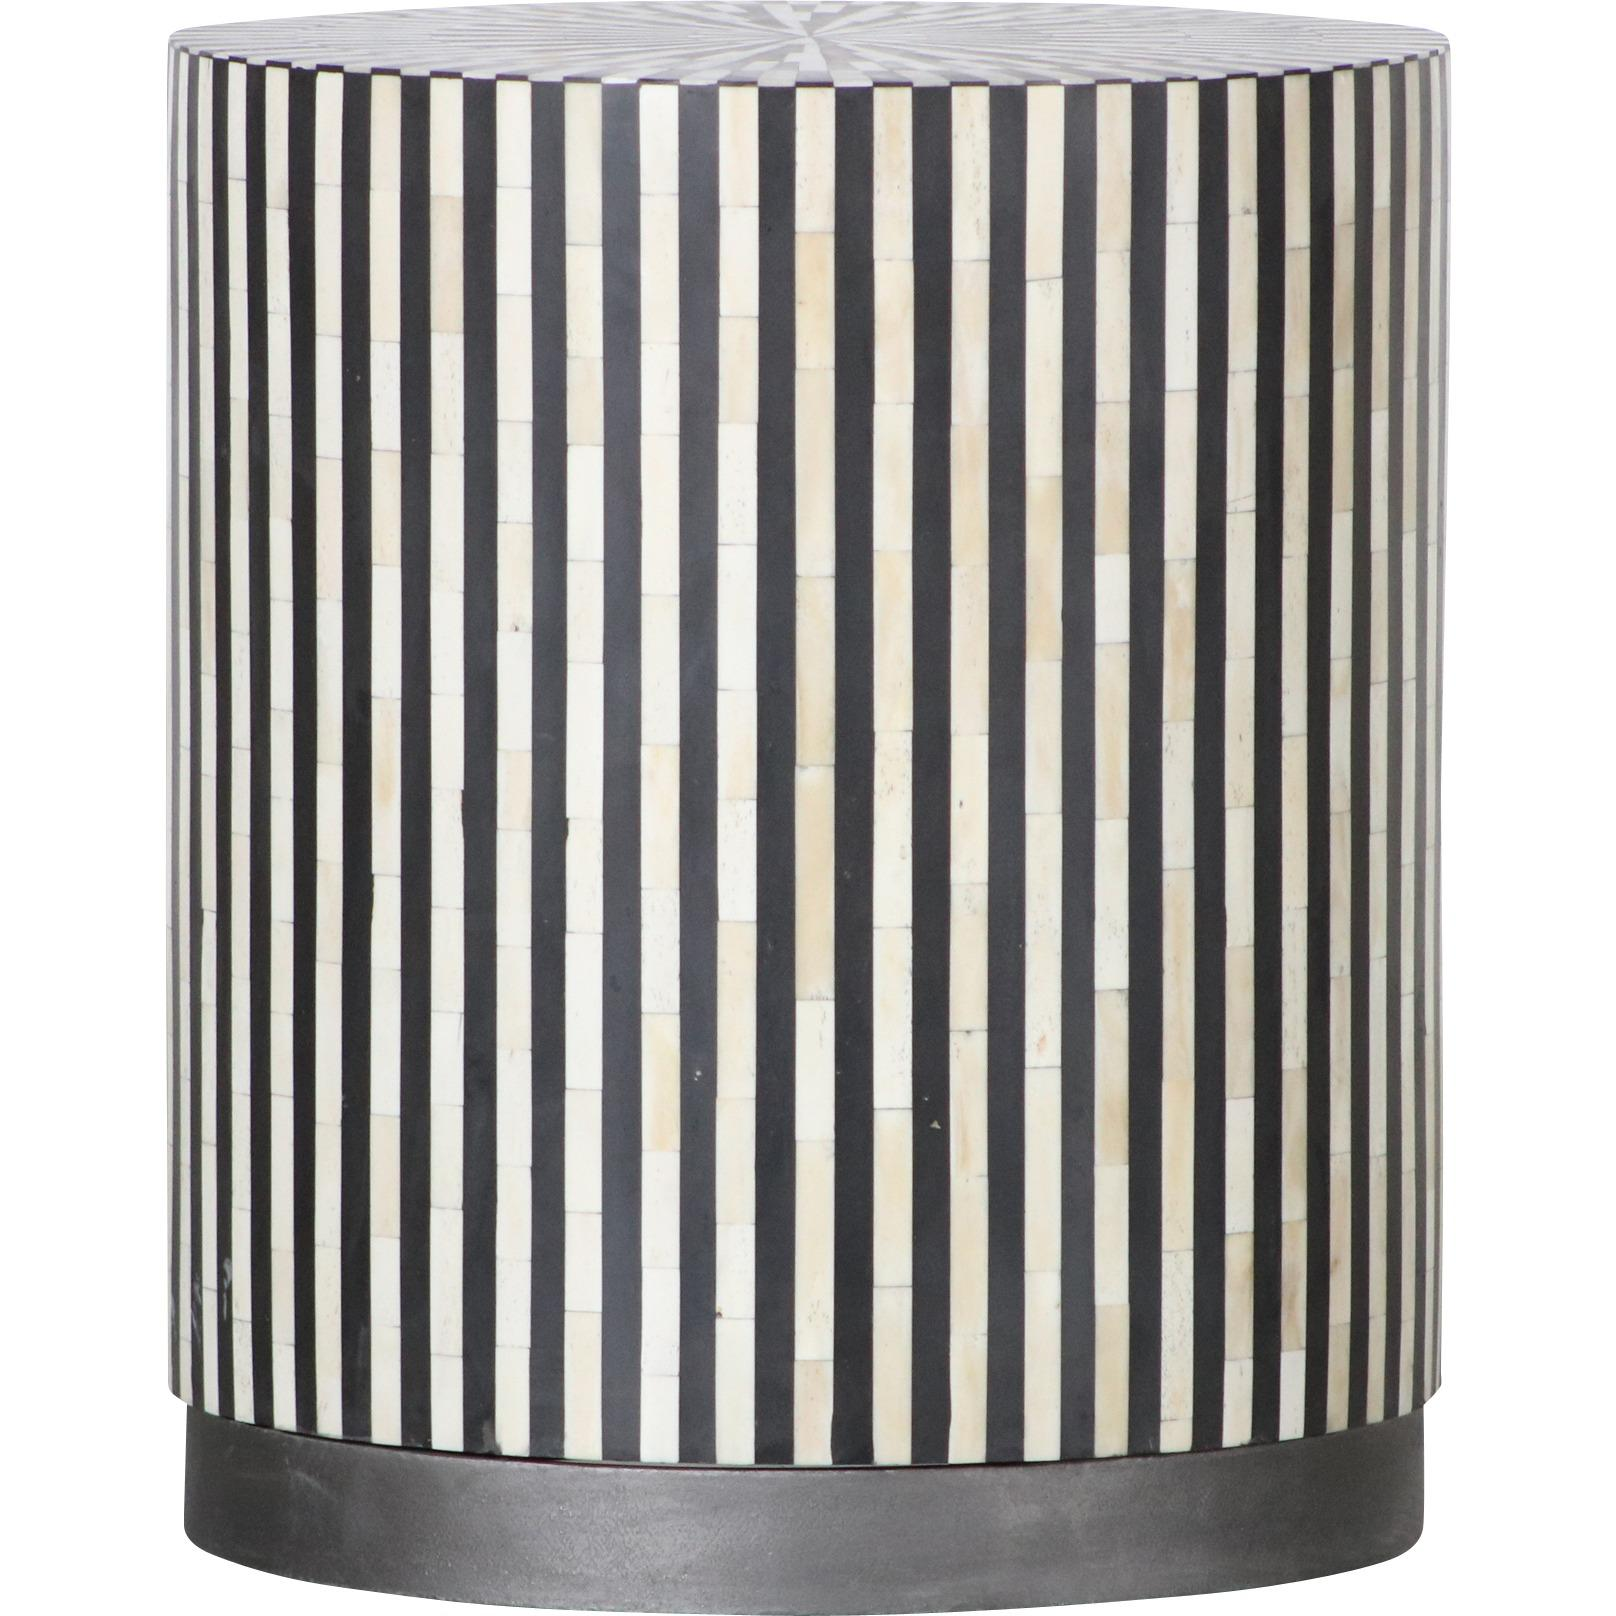 Erdos ko home buckley accent table image 6 of 6